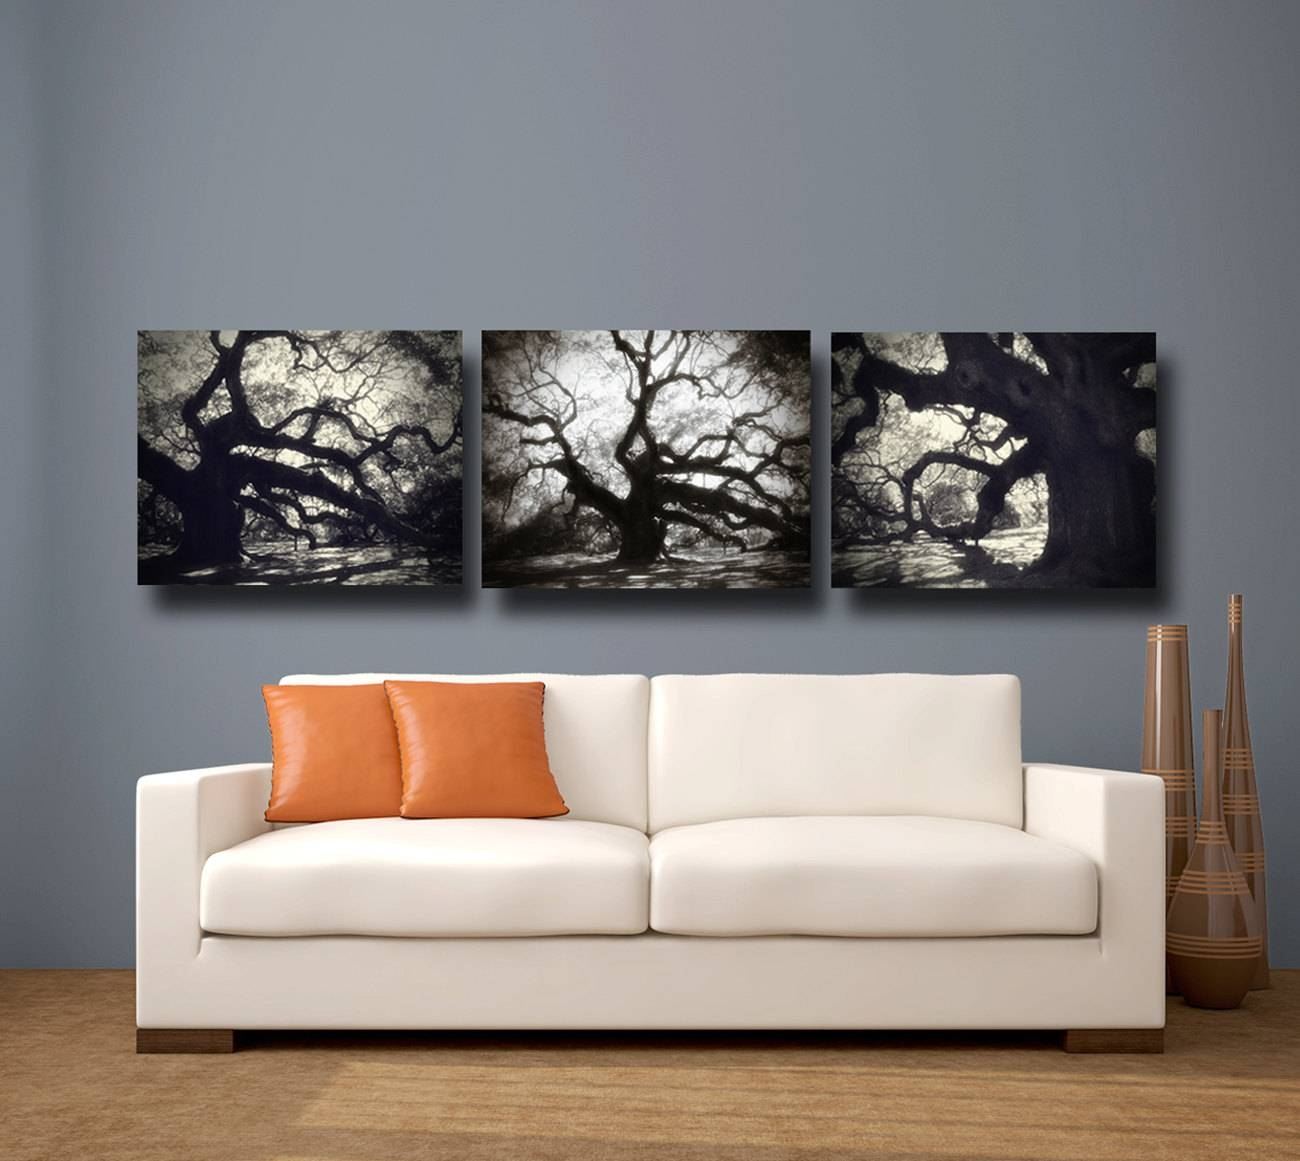 Black And White Wall Art Captivating Property Architecture A Black Within Best And Newest Black And White Damask Wall Art (View 10 of 30)